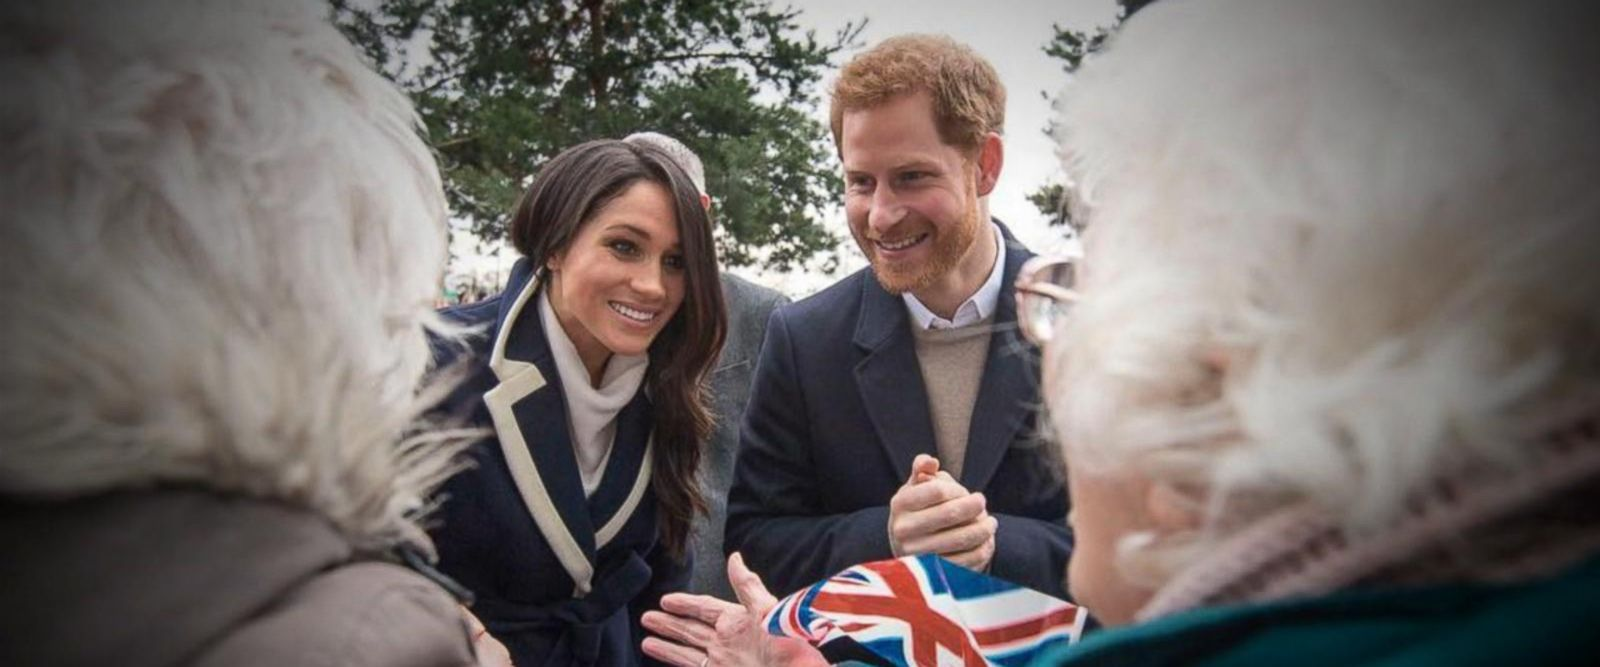 VIDEO: New book explores Prince Harry's romance with Meghan Markle